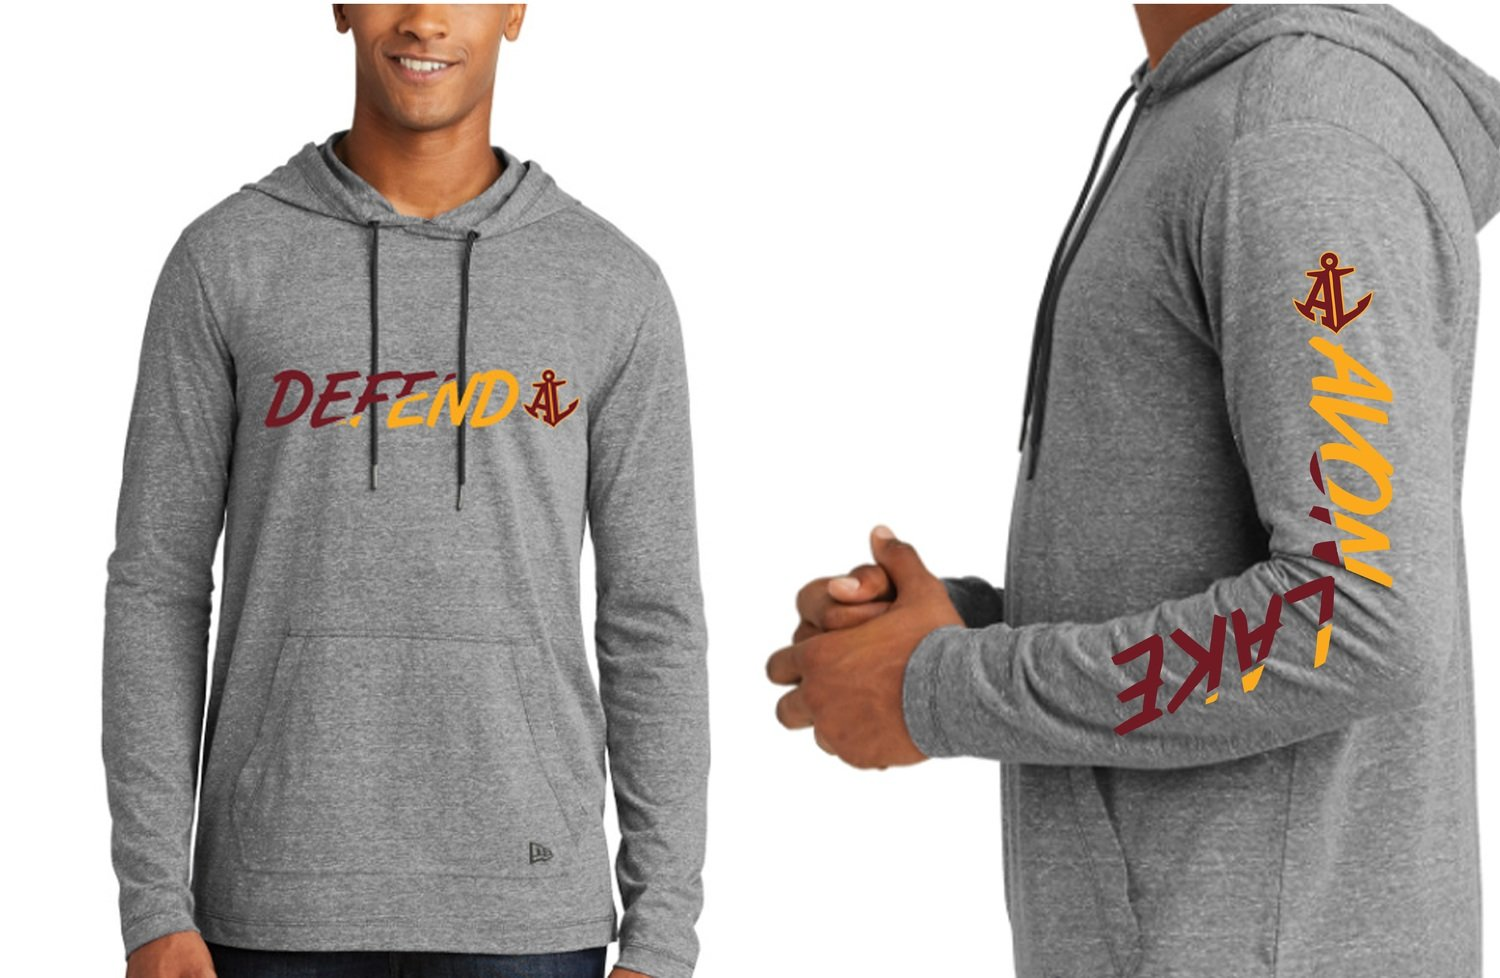 In Stock! Small - Unisex New Era Tri-Blend Performance Pullover Hoodie Tee